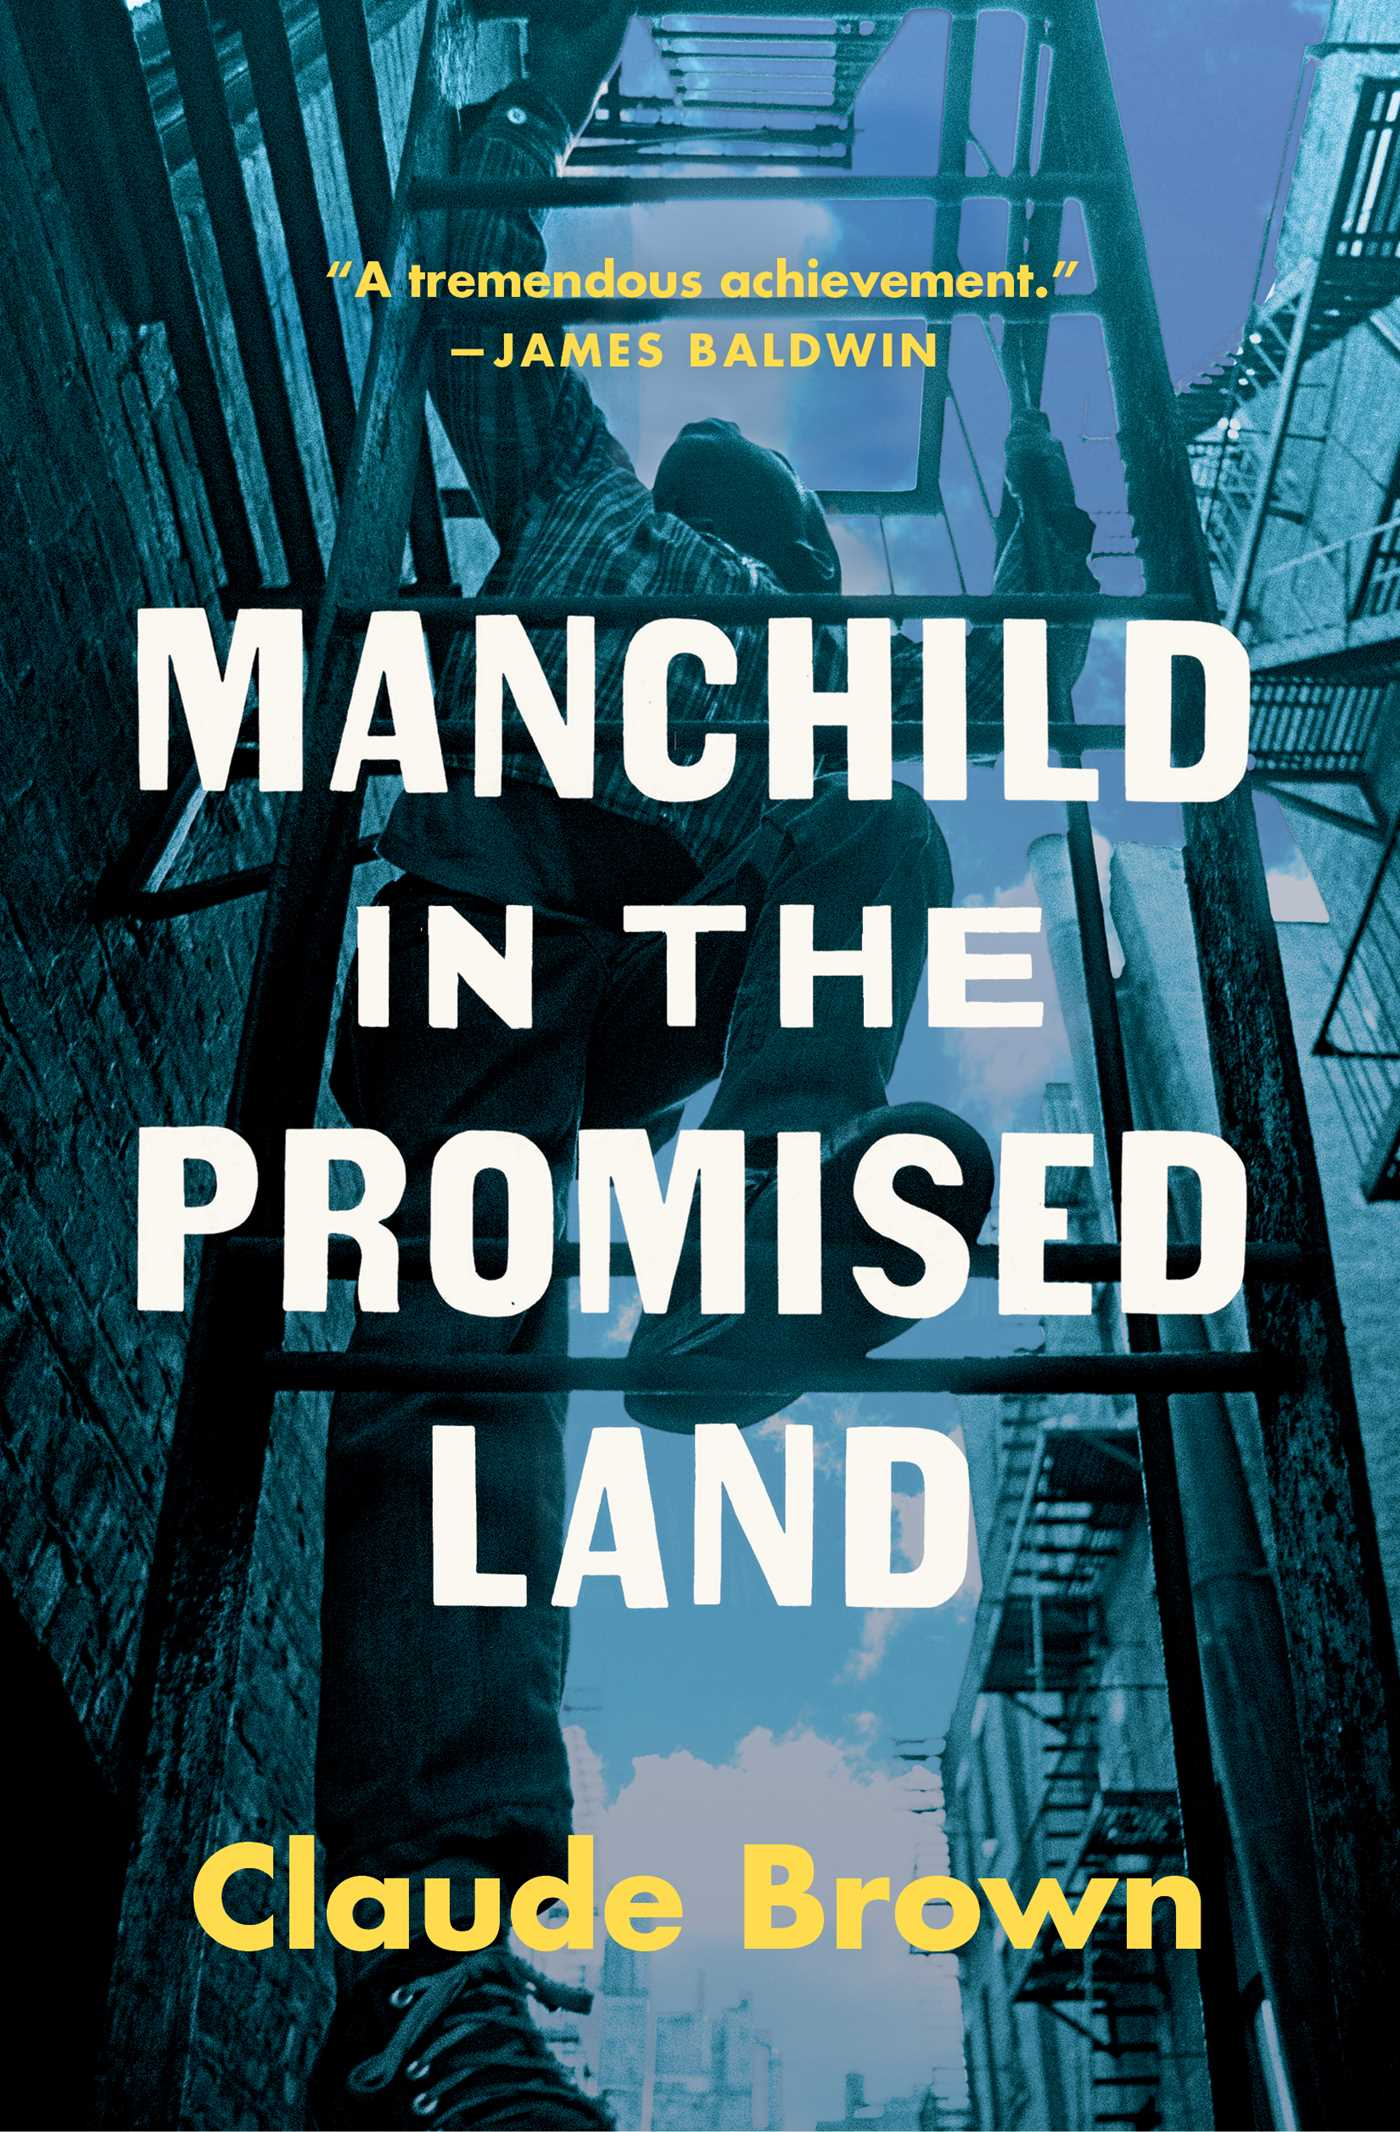 Manchild-in-the-promised-land-9781451626179_hr